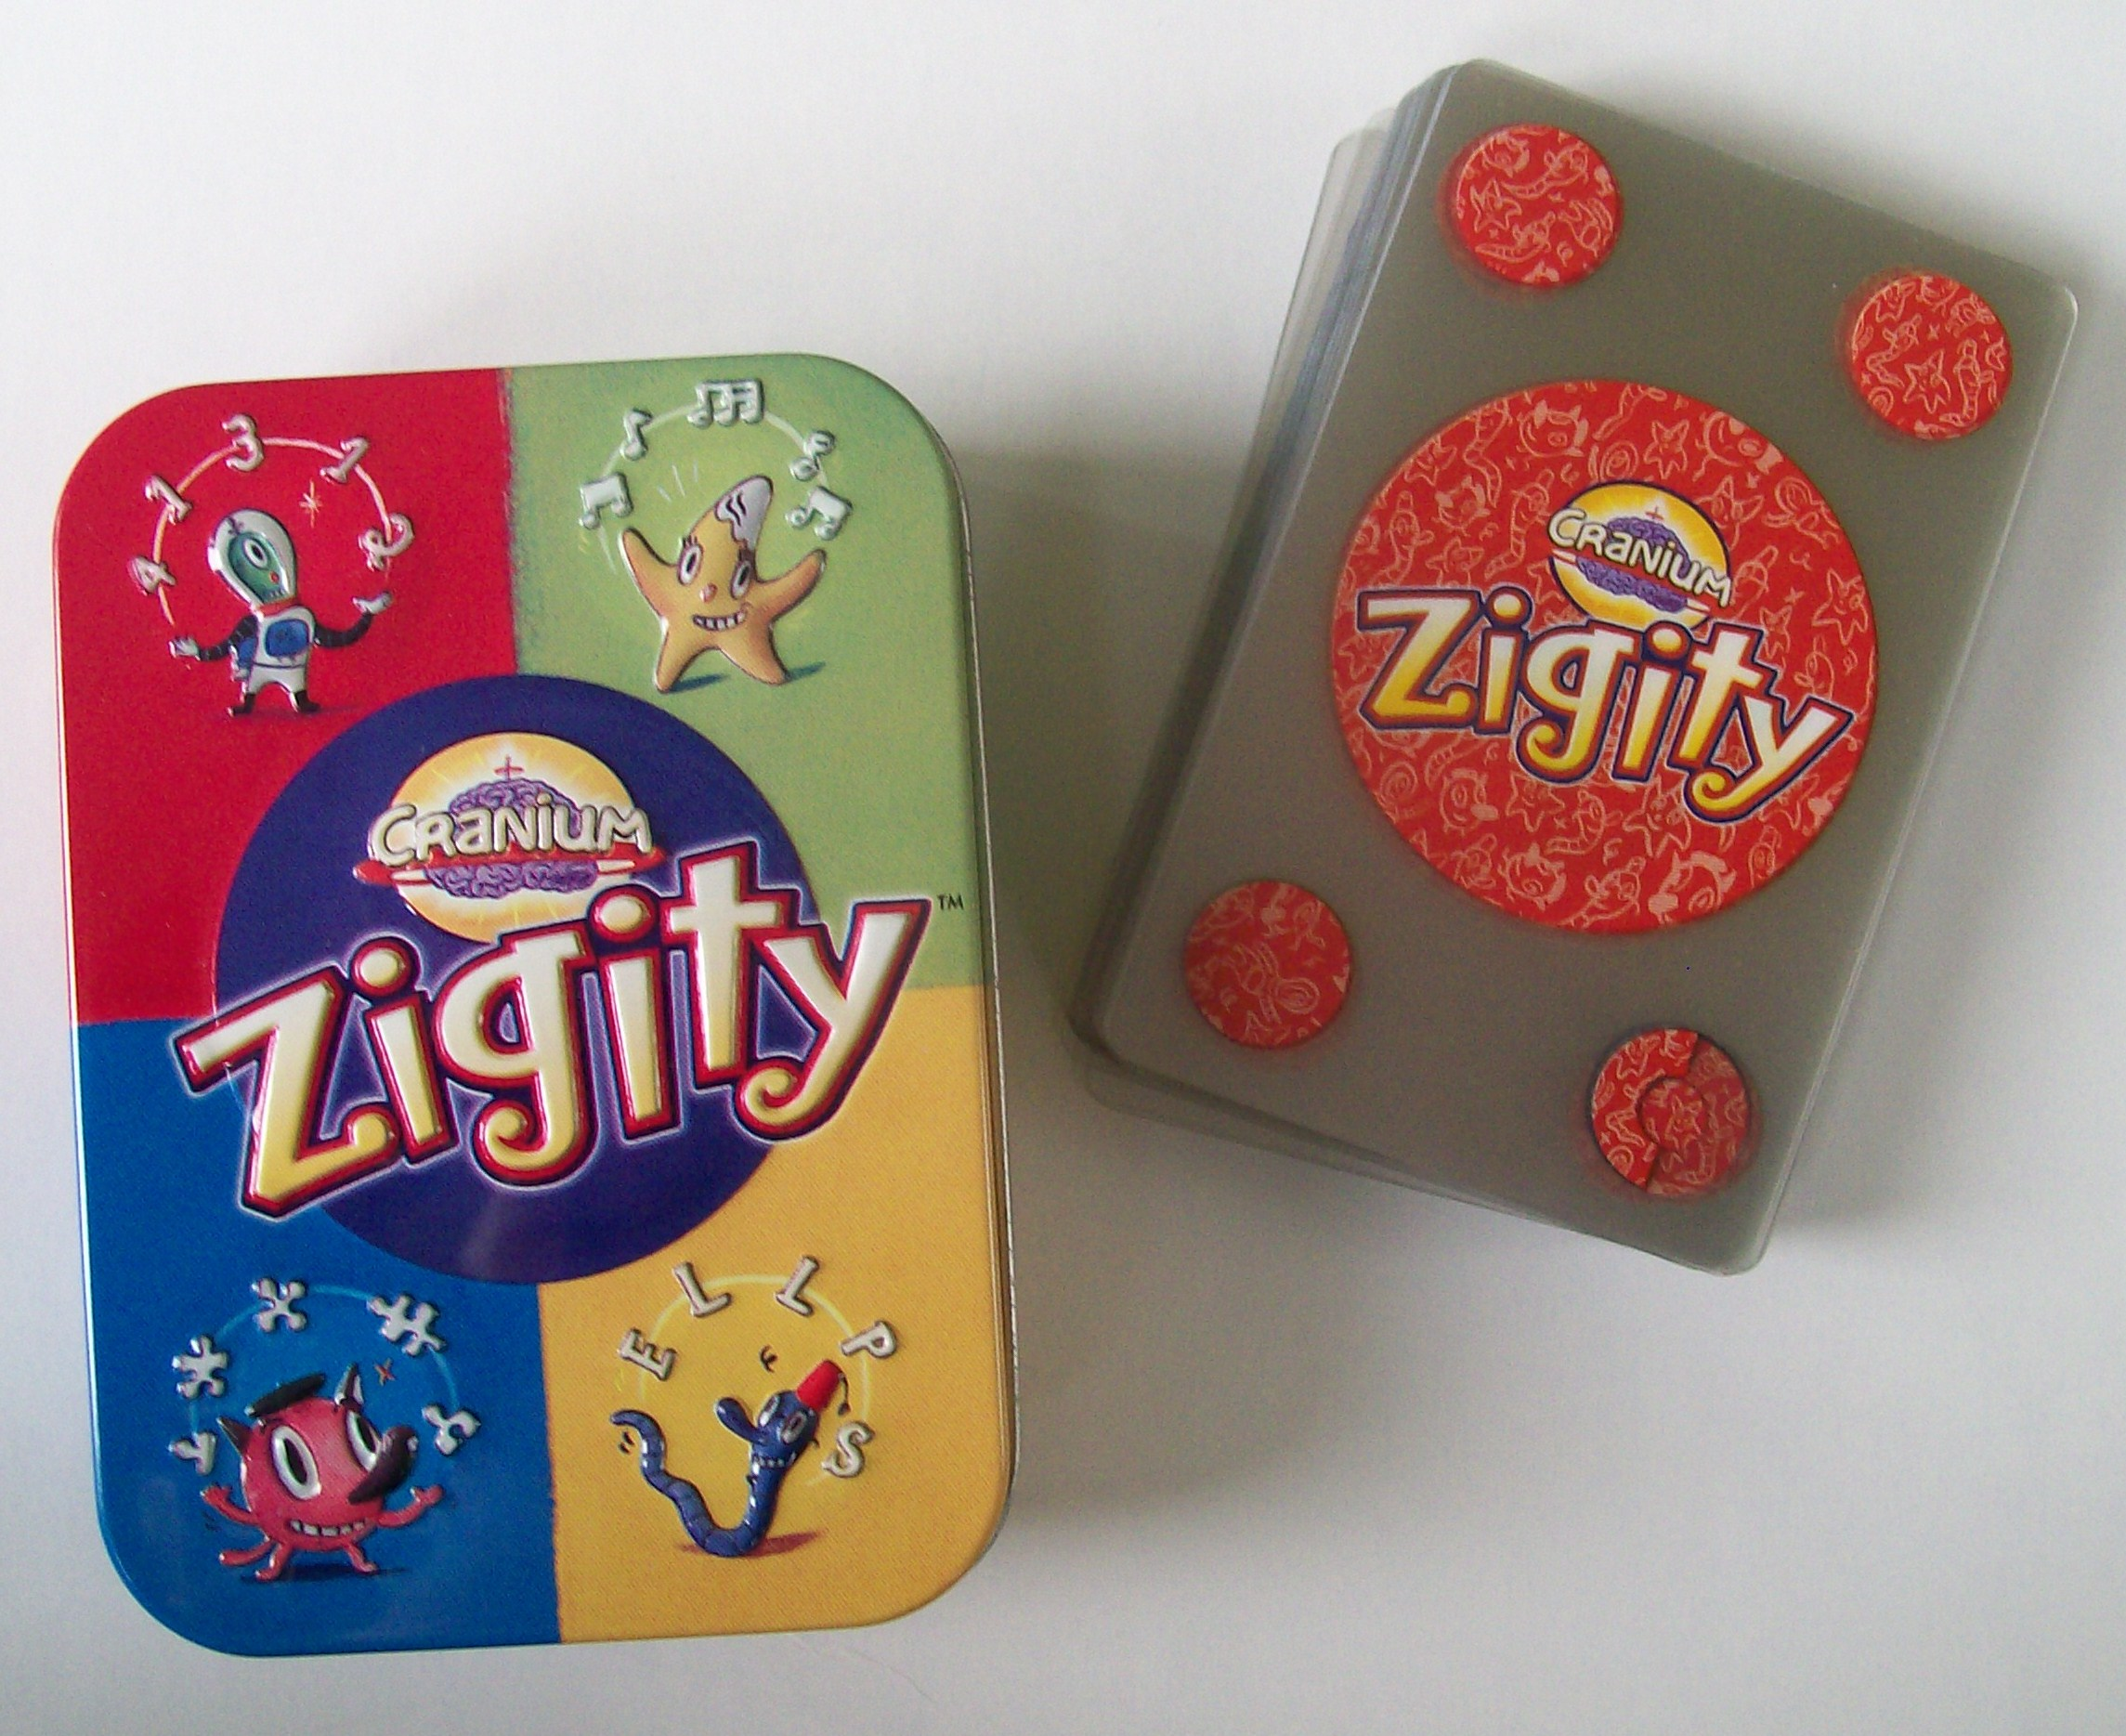 Zigity card game